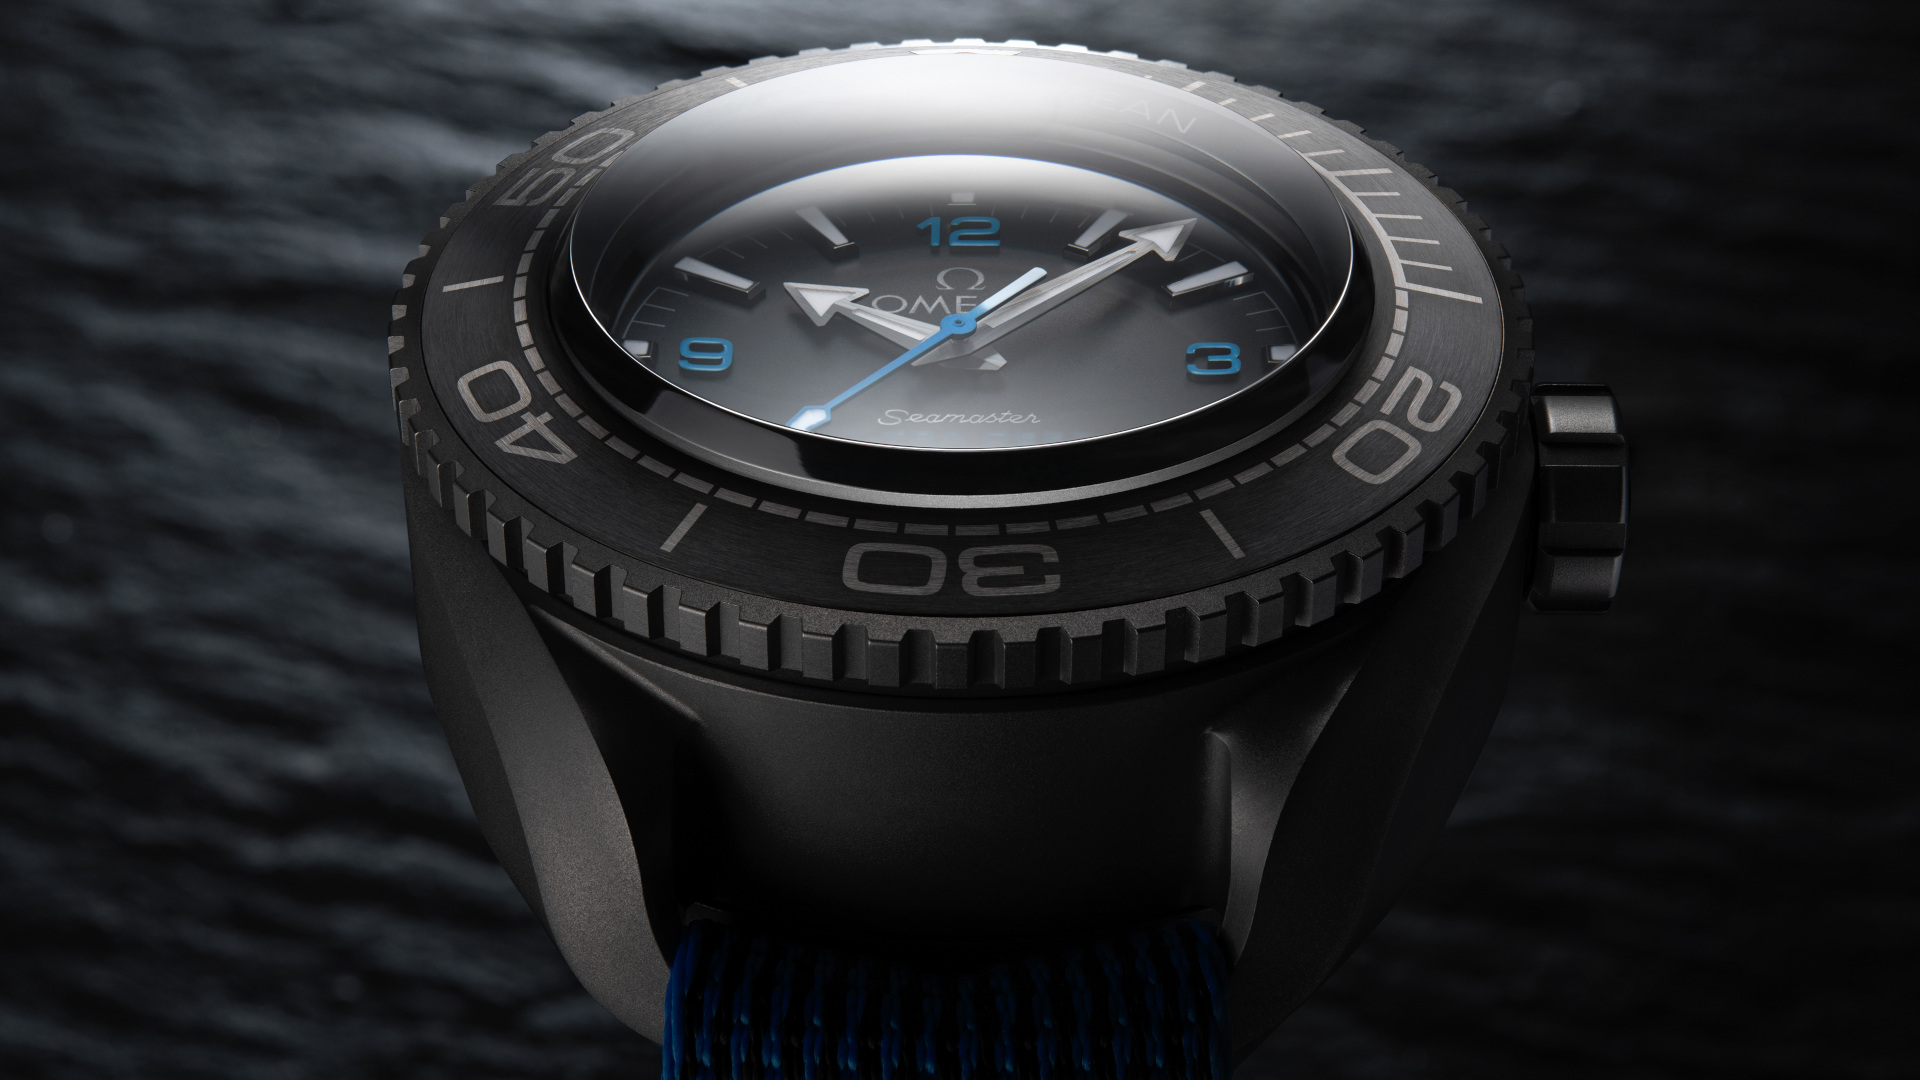 Omega goes from outer space to deepest depths with the Seamaster Planet Ocean Ultra Deep Professional